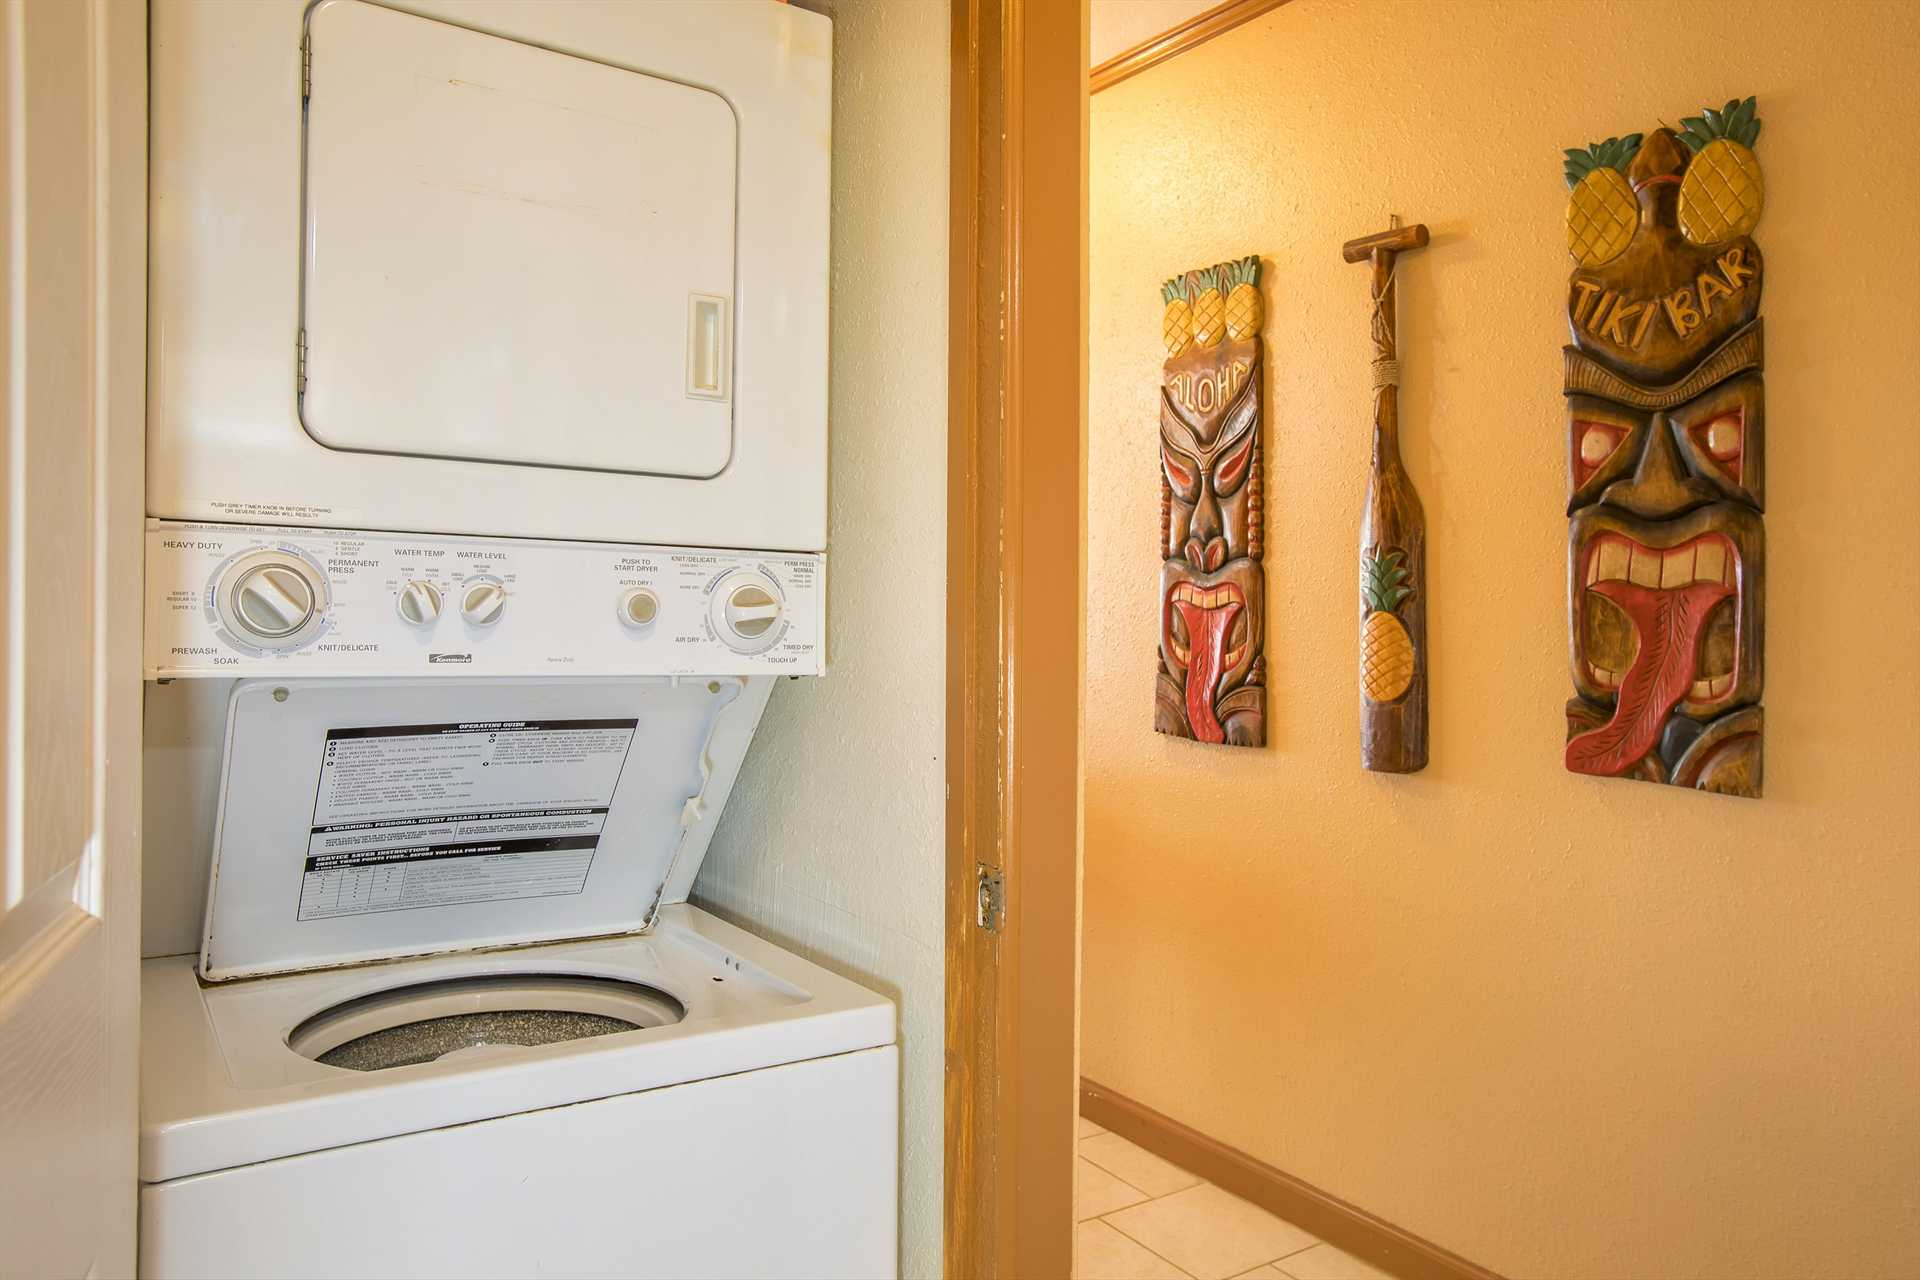 Washer and dryer conveniently located inside the condo